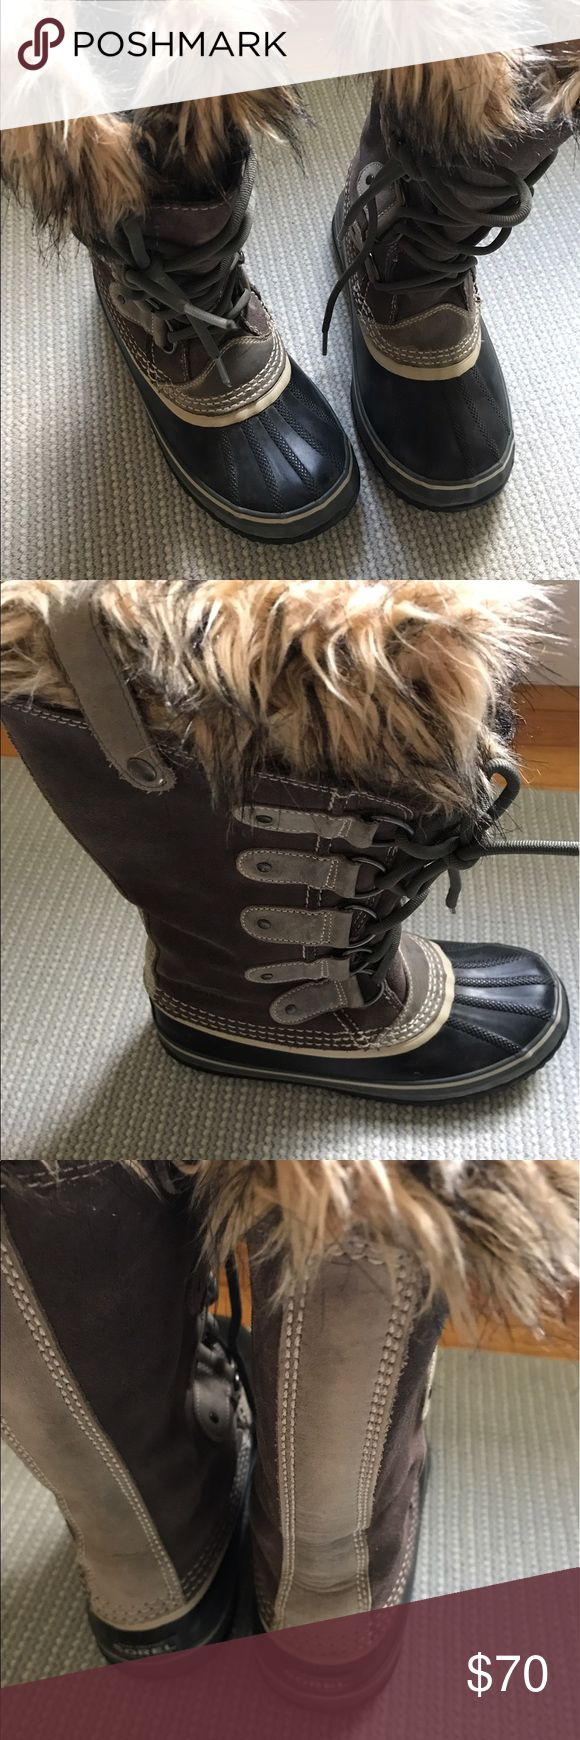 Sorel Joan of Arc Boots Size 8, Sorel Joan of arc boots, excellent used condition, no marks or stains or damage! Get an excellent deal for winter boots in the summer! Sorel Shoes